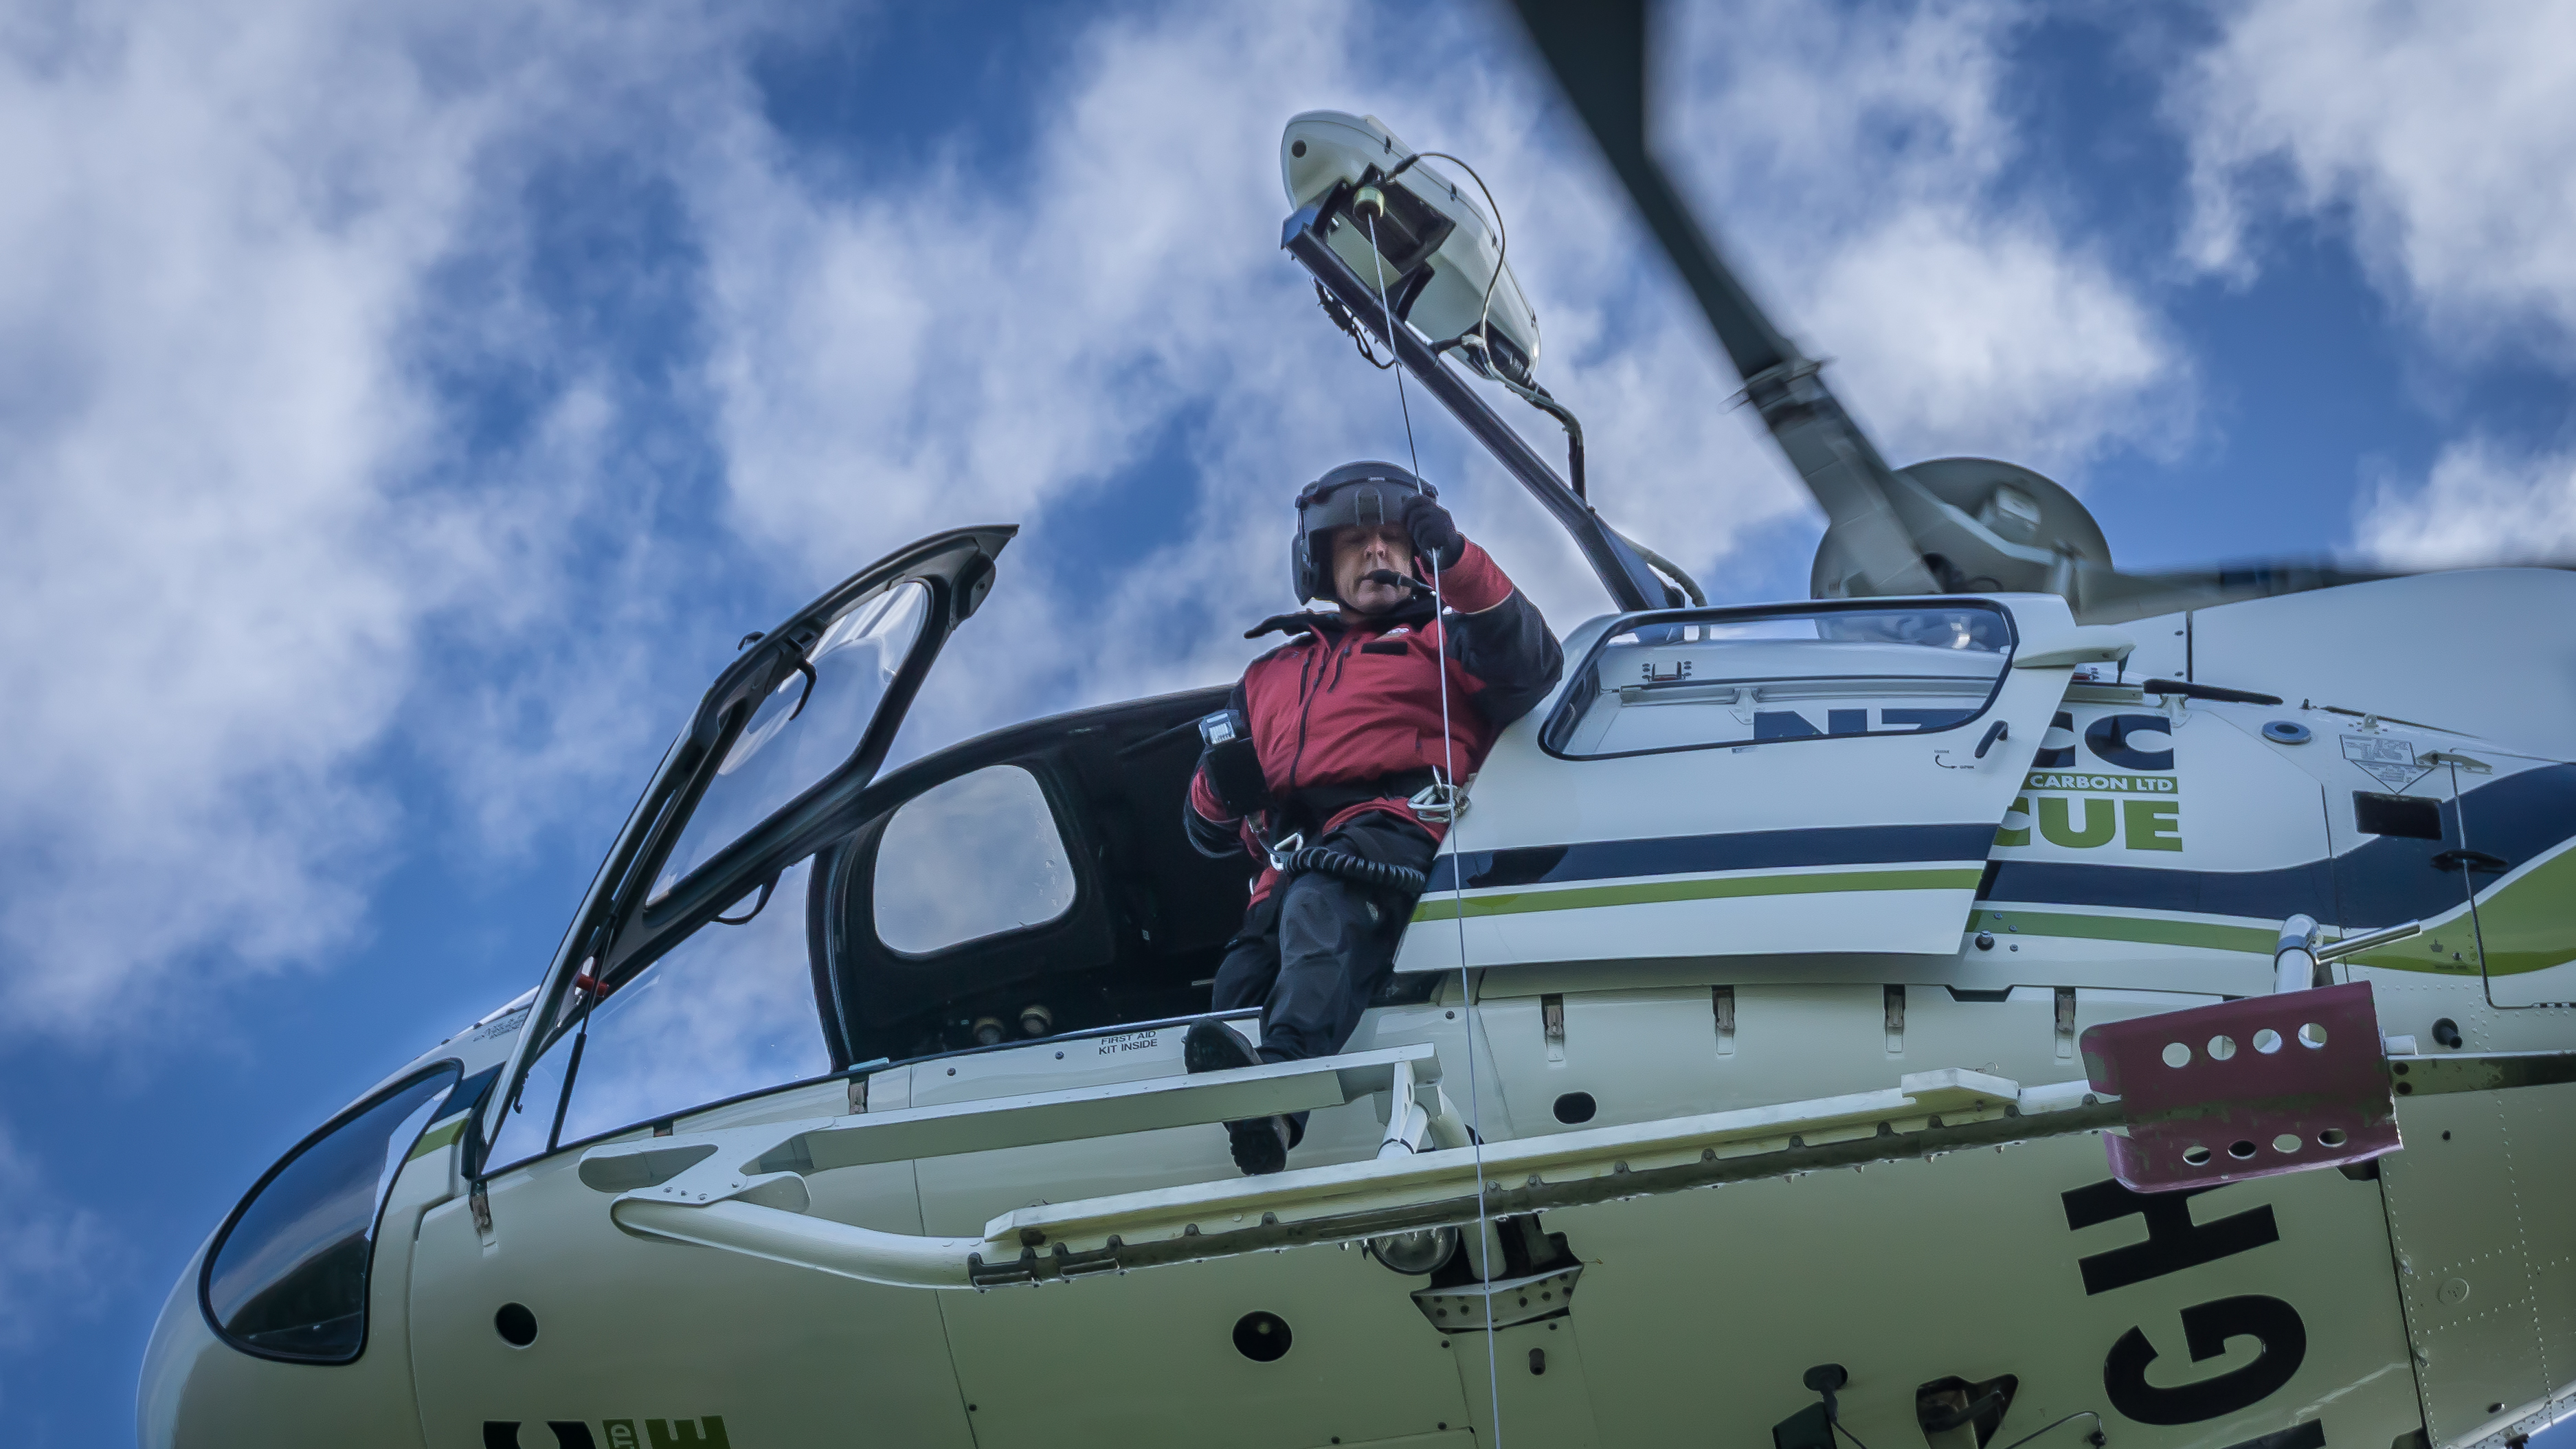 Rob Stokes (winch operator) in action, 26 May 2015